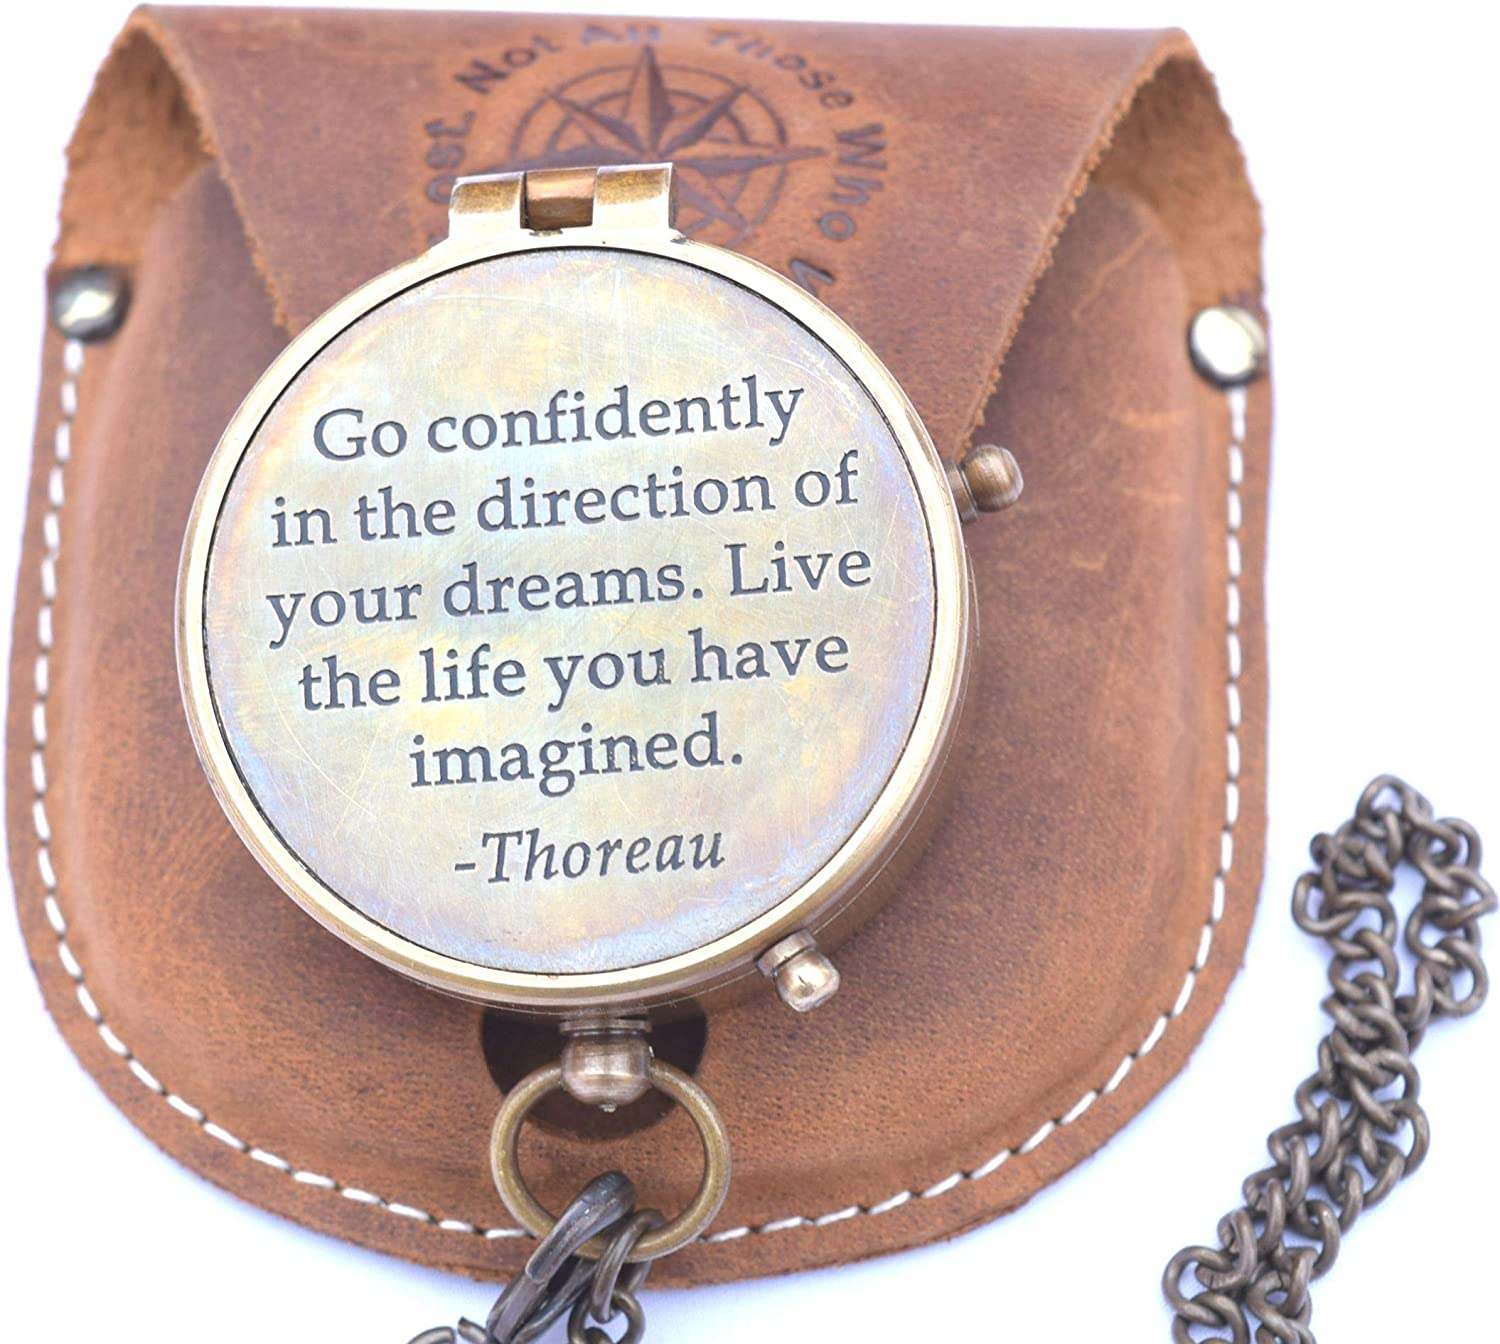 RIRHTAJUS Thoreau's Go Confidently Quote Engraved Brass New product! New type Compass Max 78% OFF